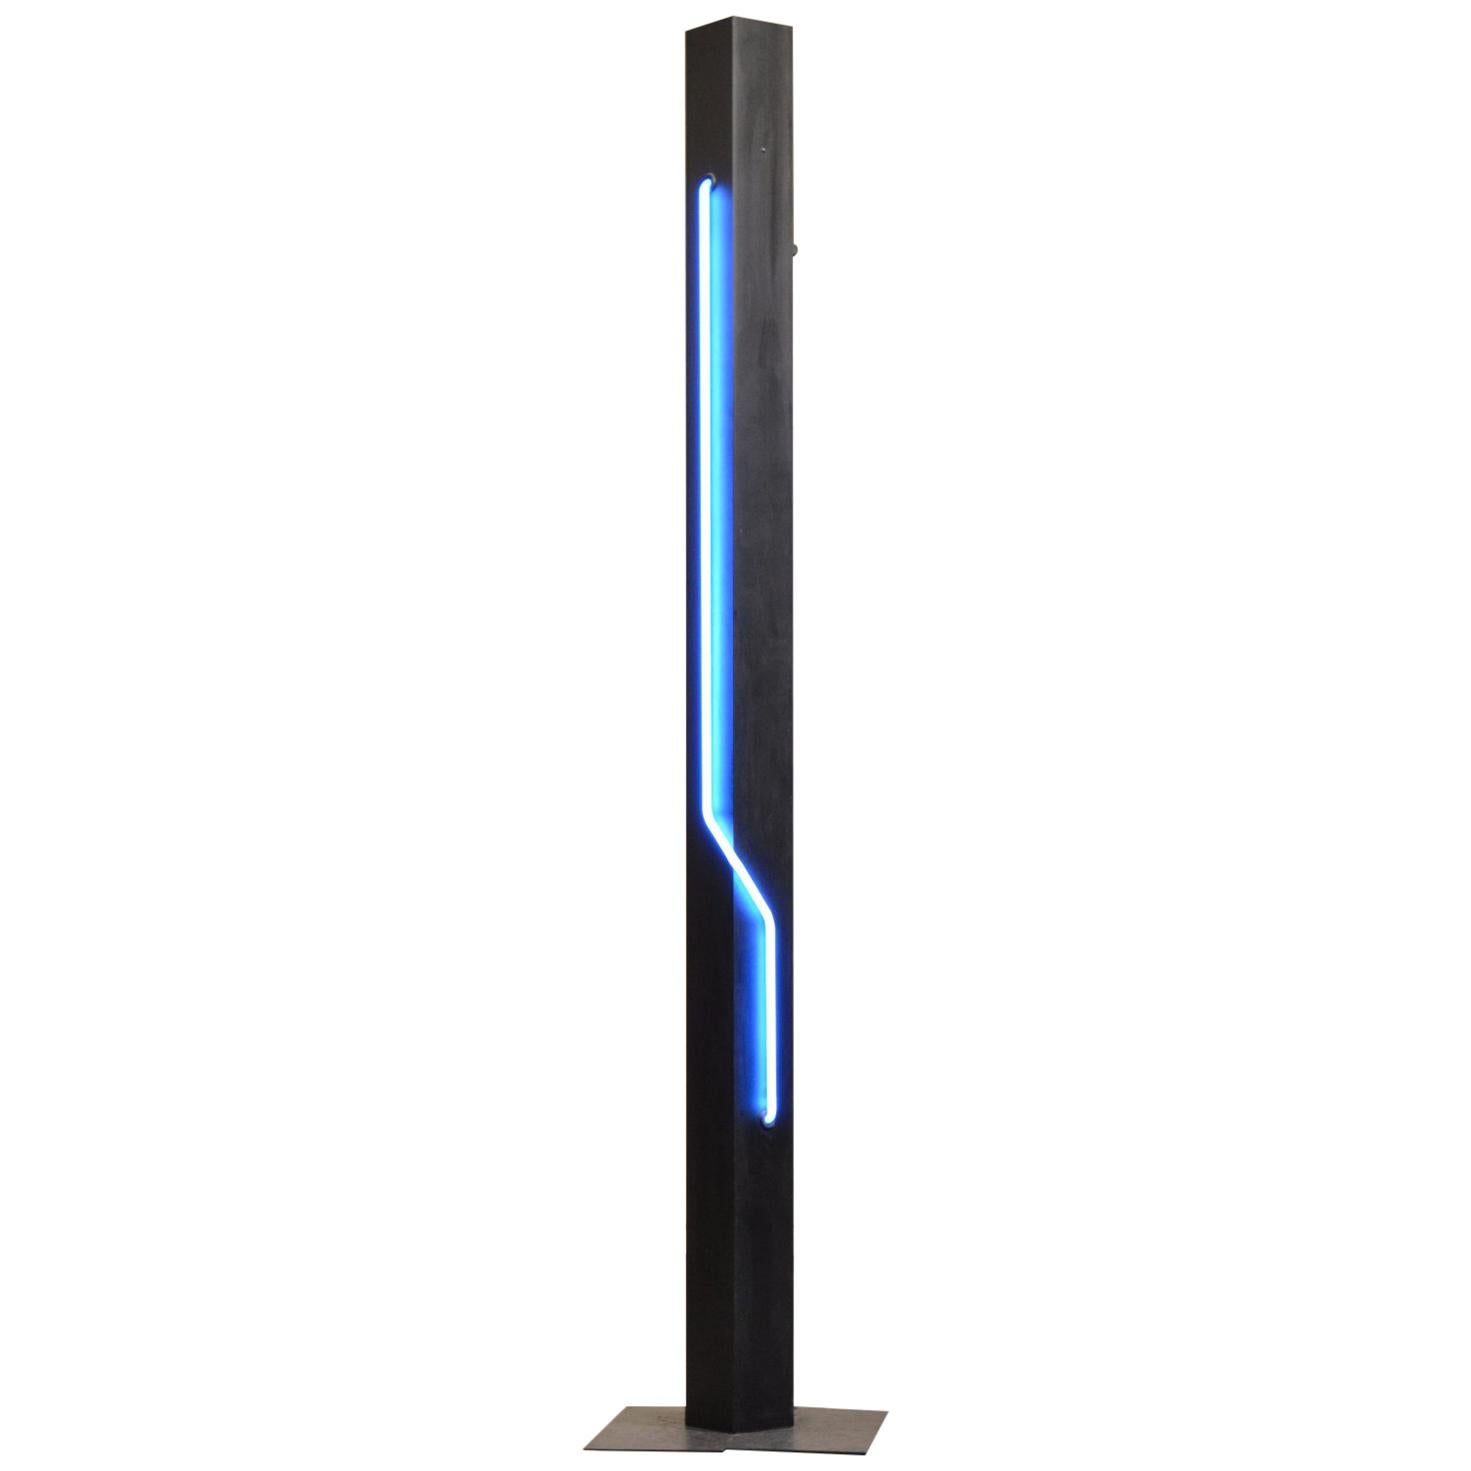 Post-Modern Blue Neon Torchiere Floor Lamp by Let There Be Neon for Kovacs